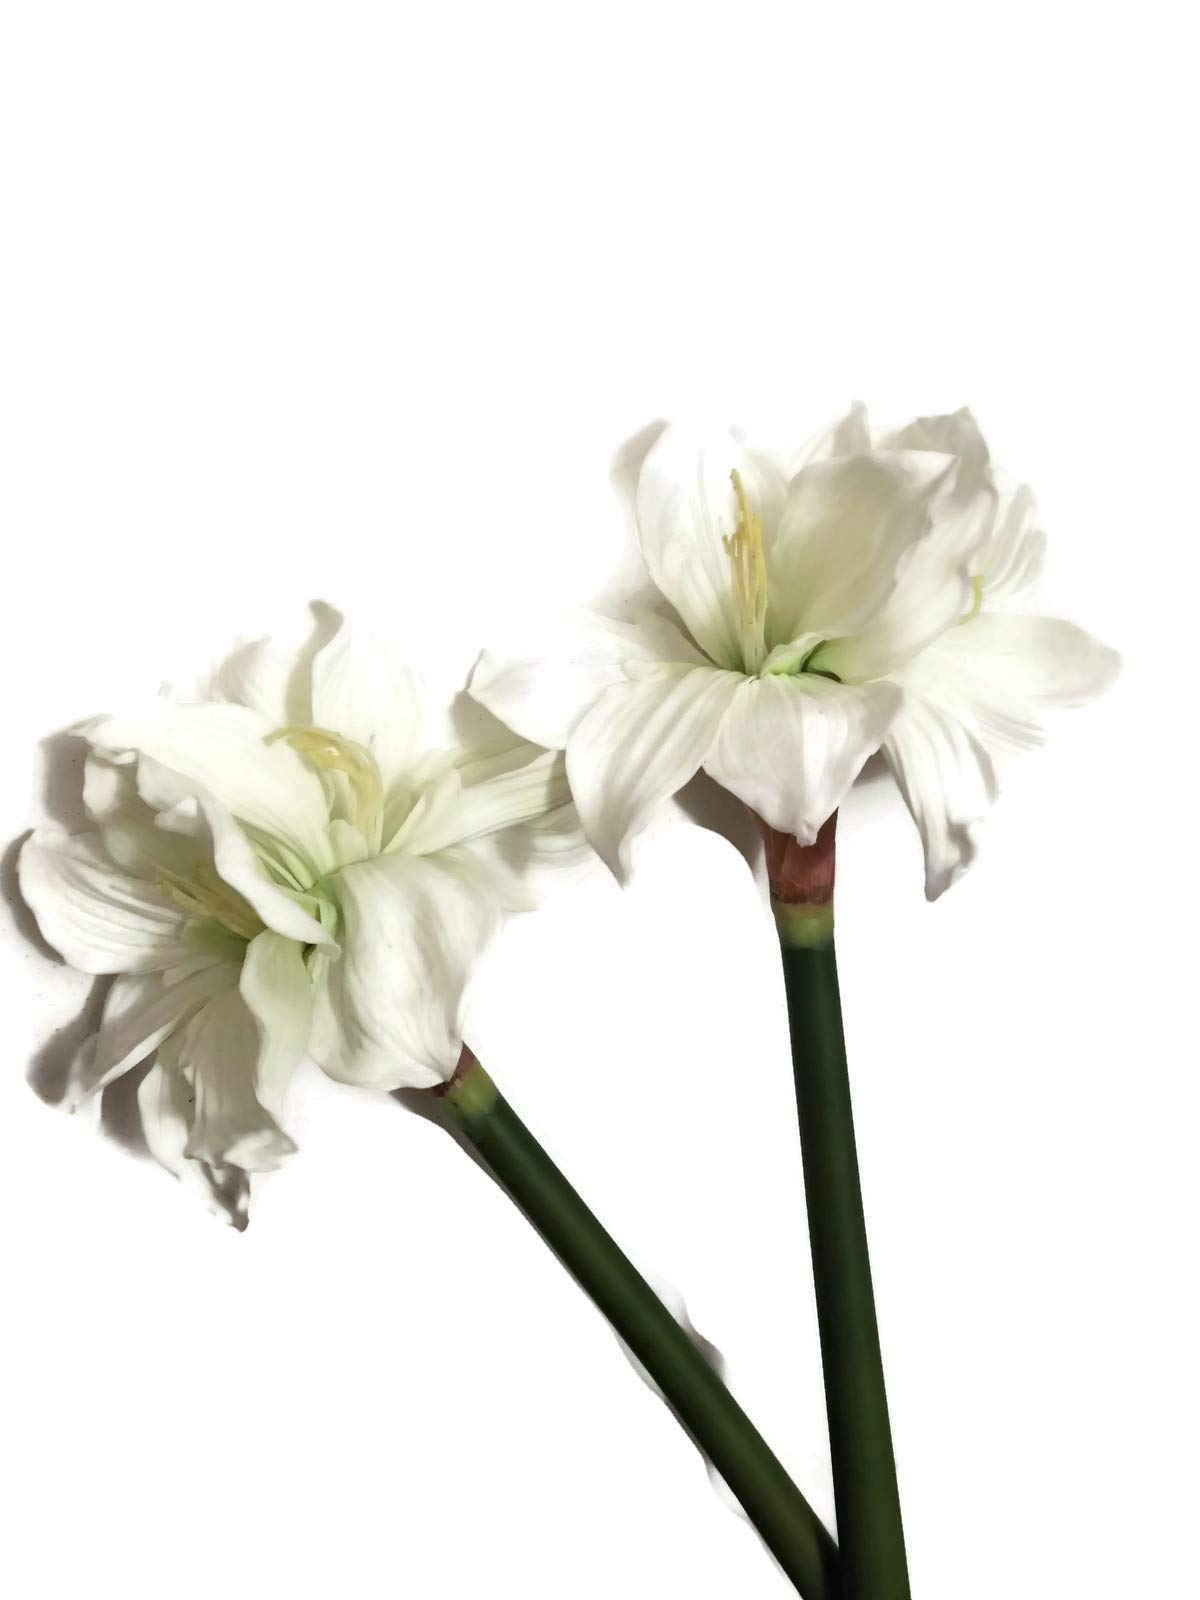 Floral-Kingdom-Real-Touch-30-XLarge-Artificial-Amaryllis-Flowers-for-vase-Arrangements-HomeOffice-Decor-Pack-of-3